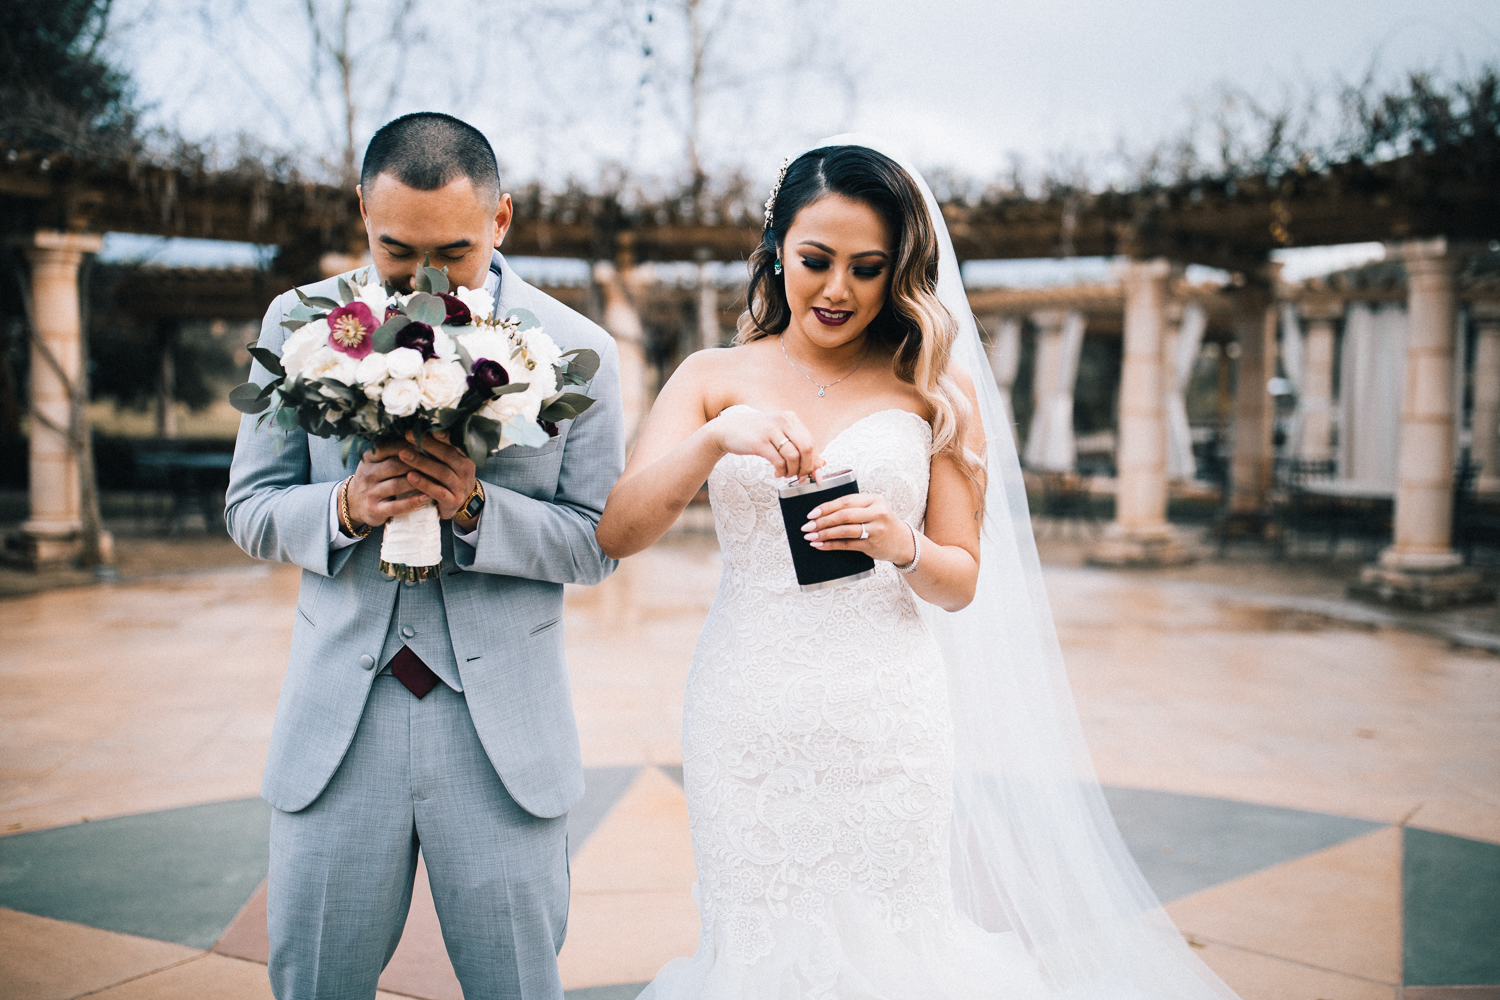 2019_01_ 202019.01.20 Santiago Wedding Blog Photos Edited For Web 0077.jpg